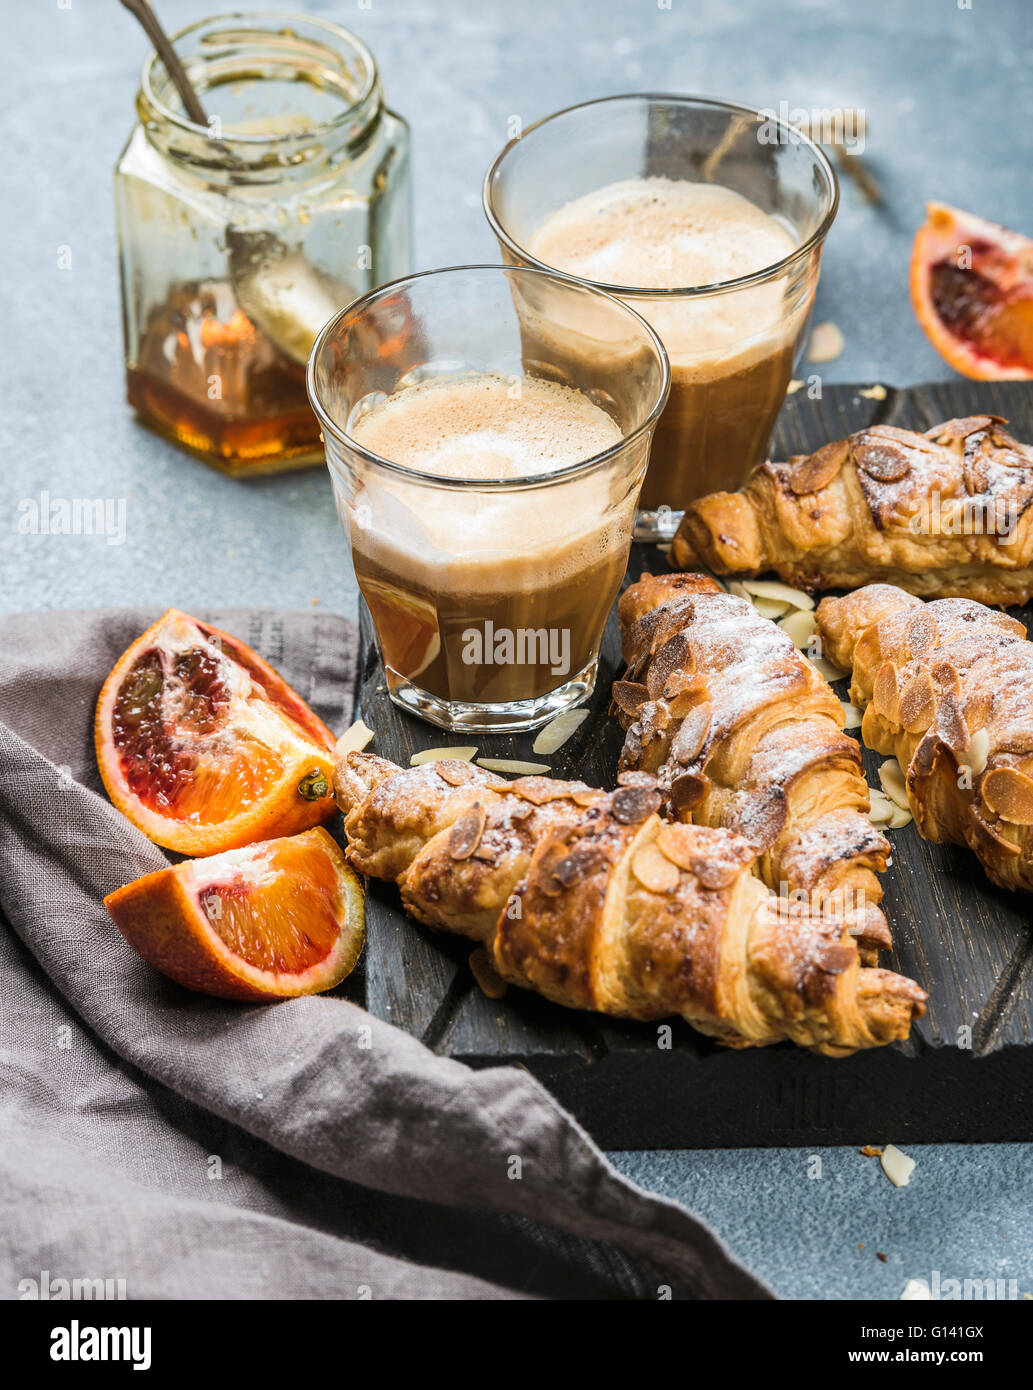 Italian style home breakfast. Latte coffee, almond croissants and red bloody oranges on dark wooden serving  board - Stock Image